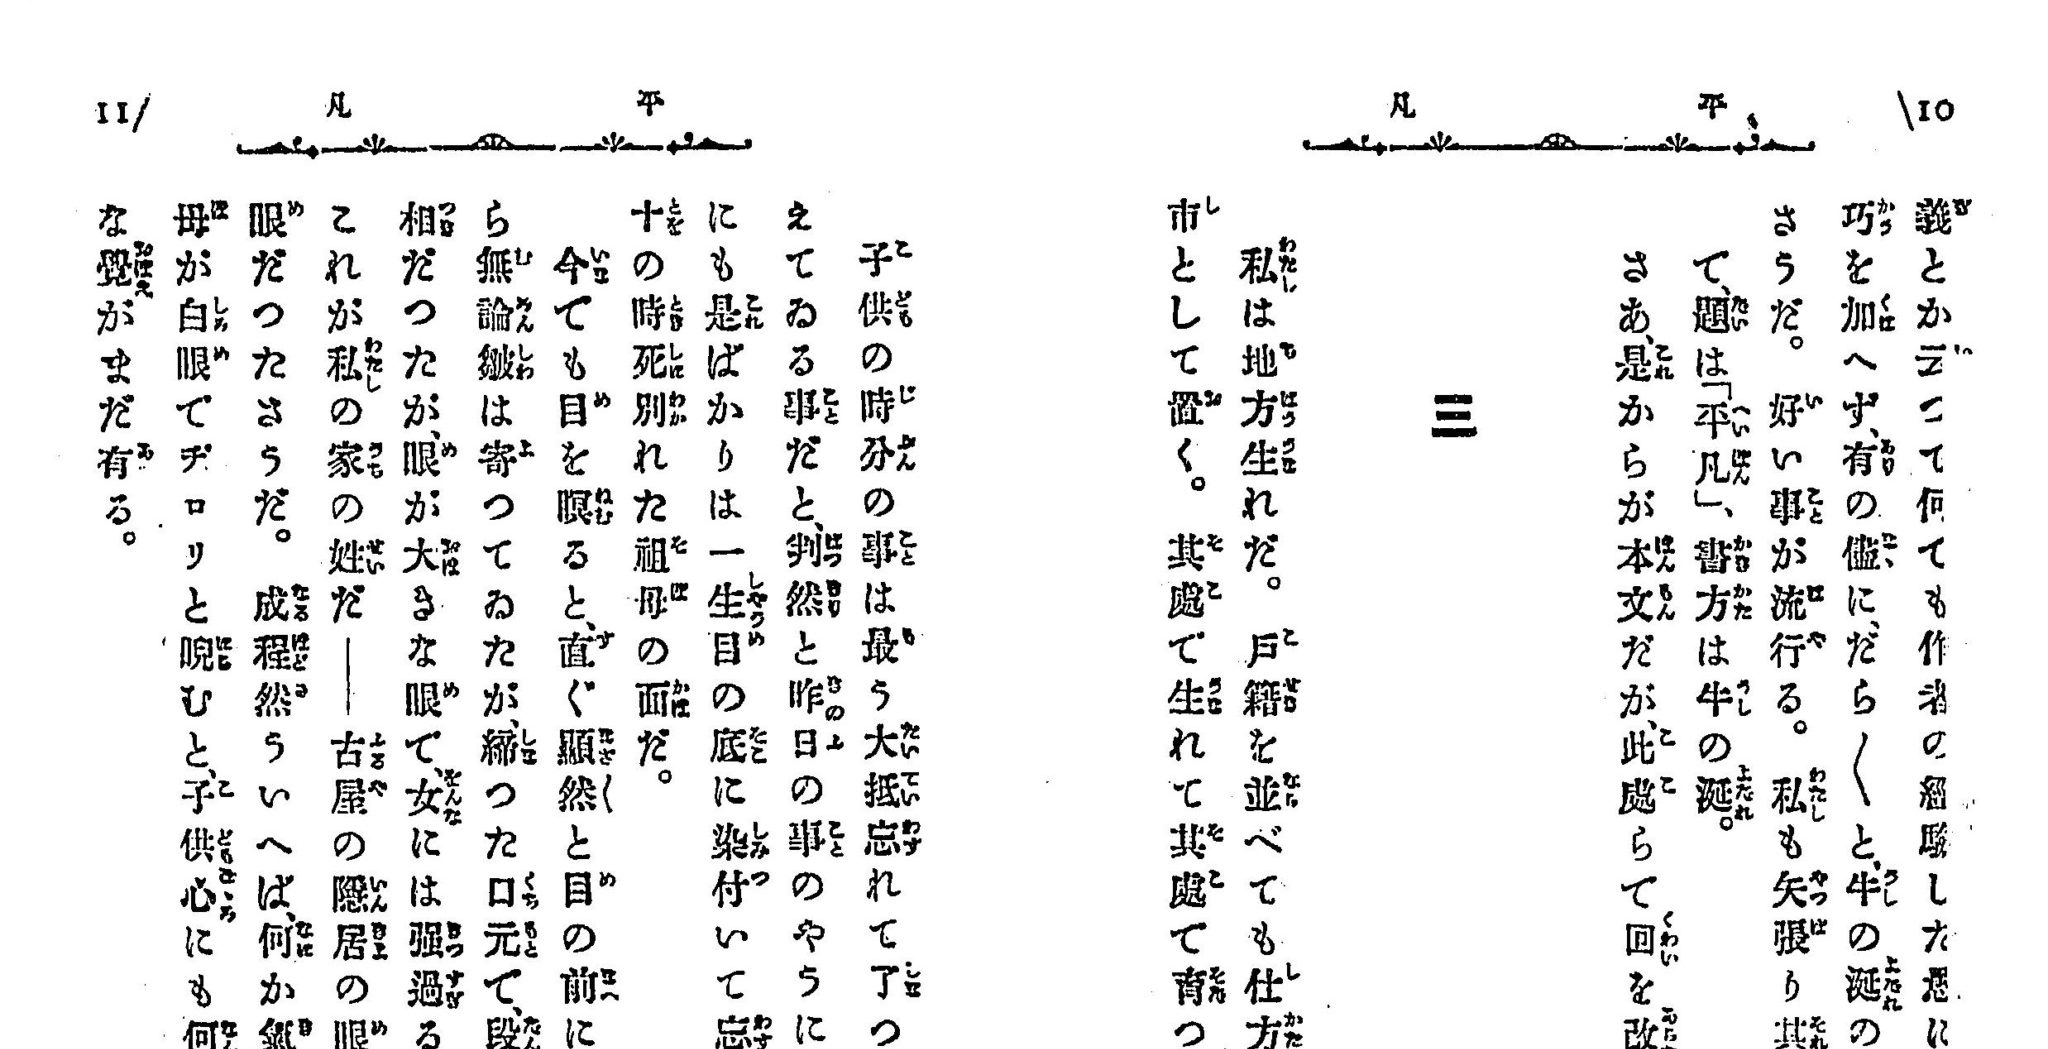 Japanese Character Sets